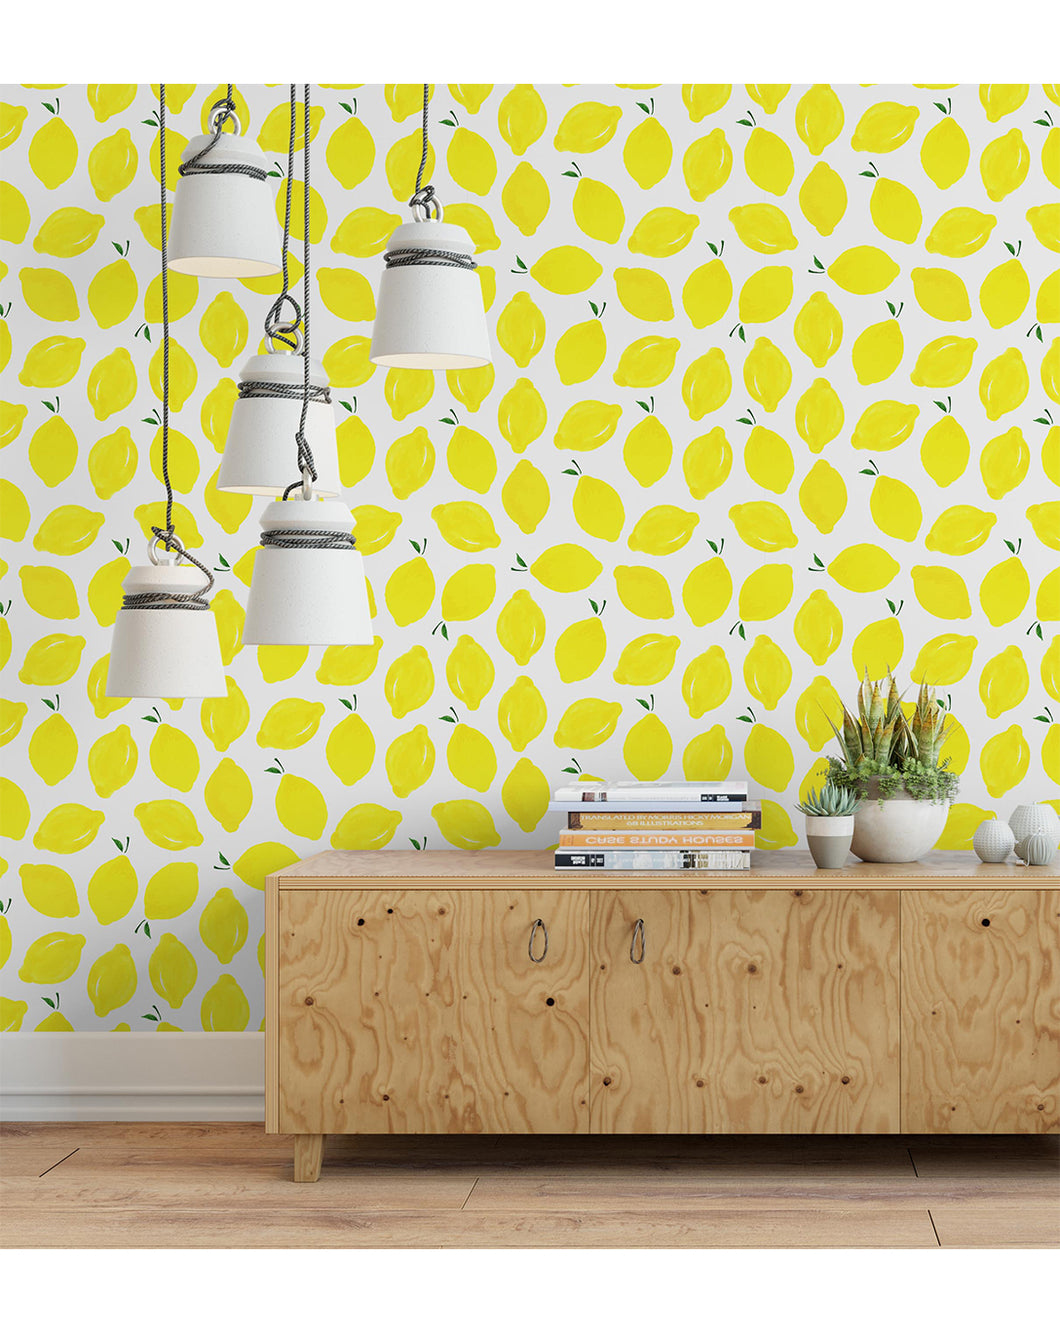 Peel and Stick Removable Wallpaper with ...